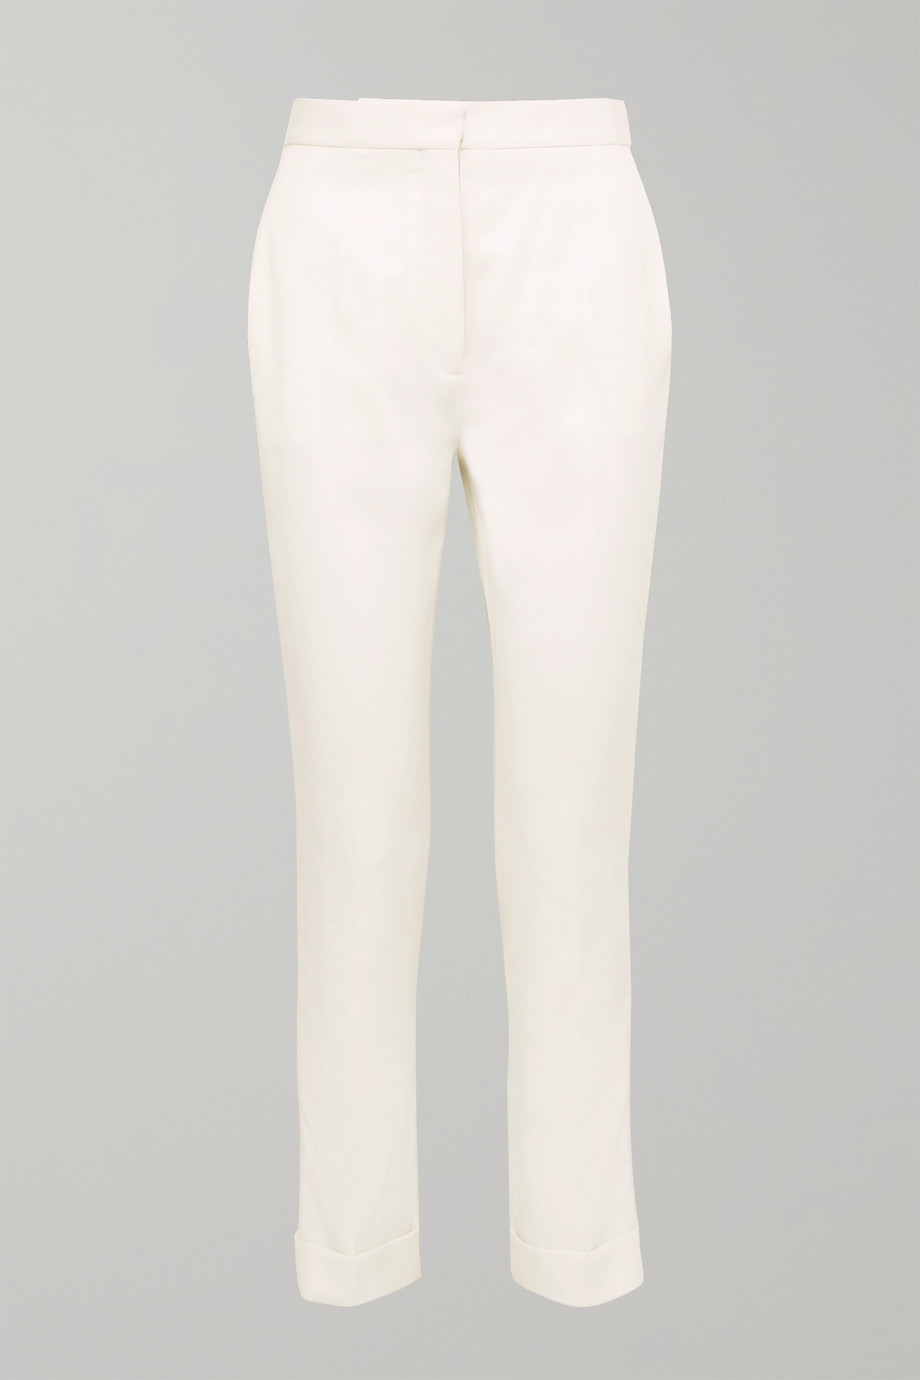 Stella McCartney Satin-trimmed grain de poudre wool pants